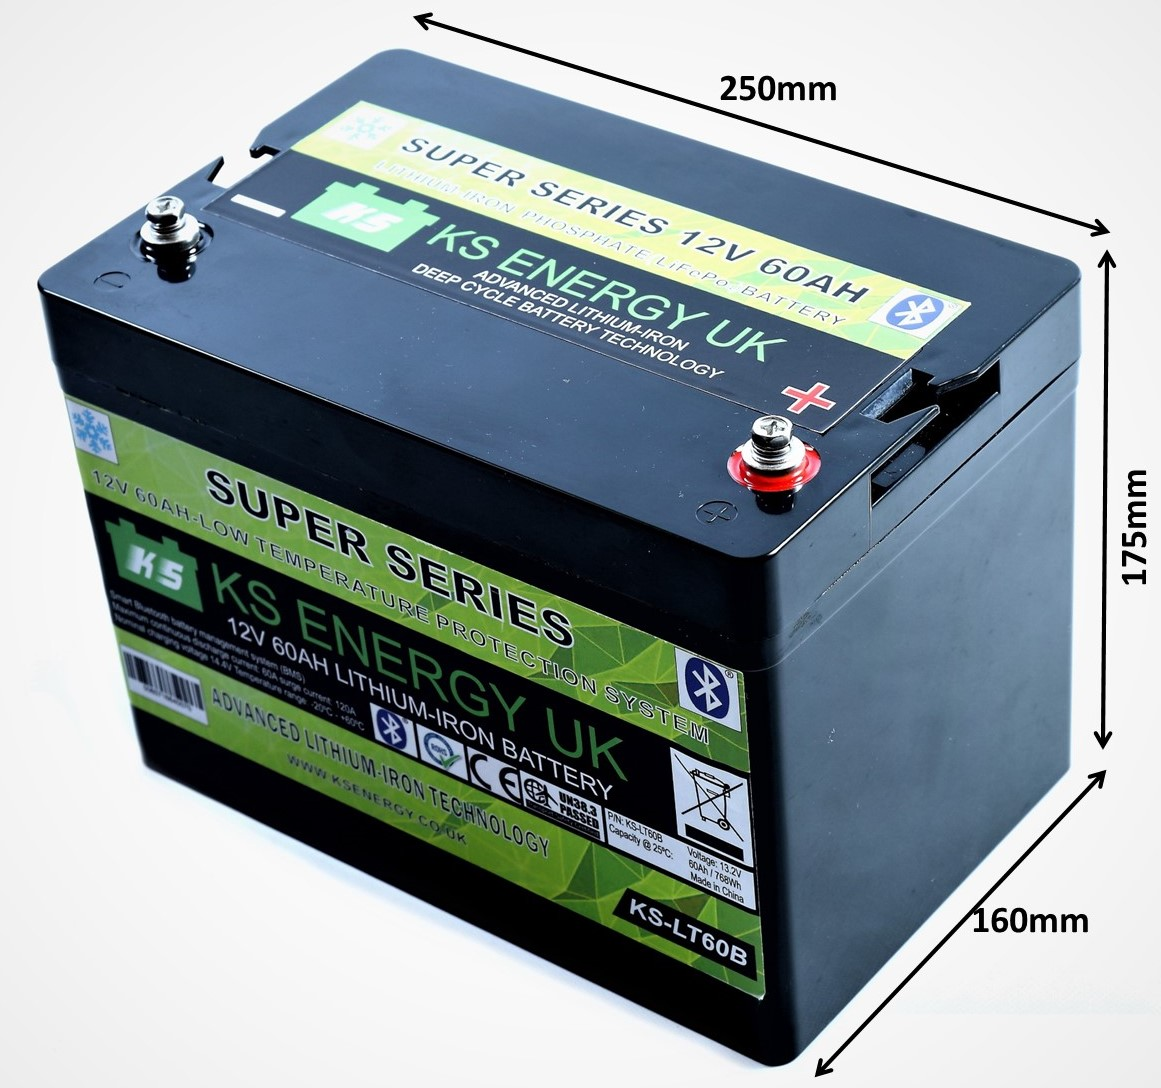 1): KS-LT60B 12v 60AH Bluetooth LiFePo4 lithium leisure battery